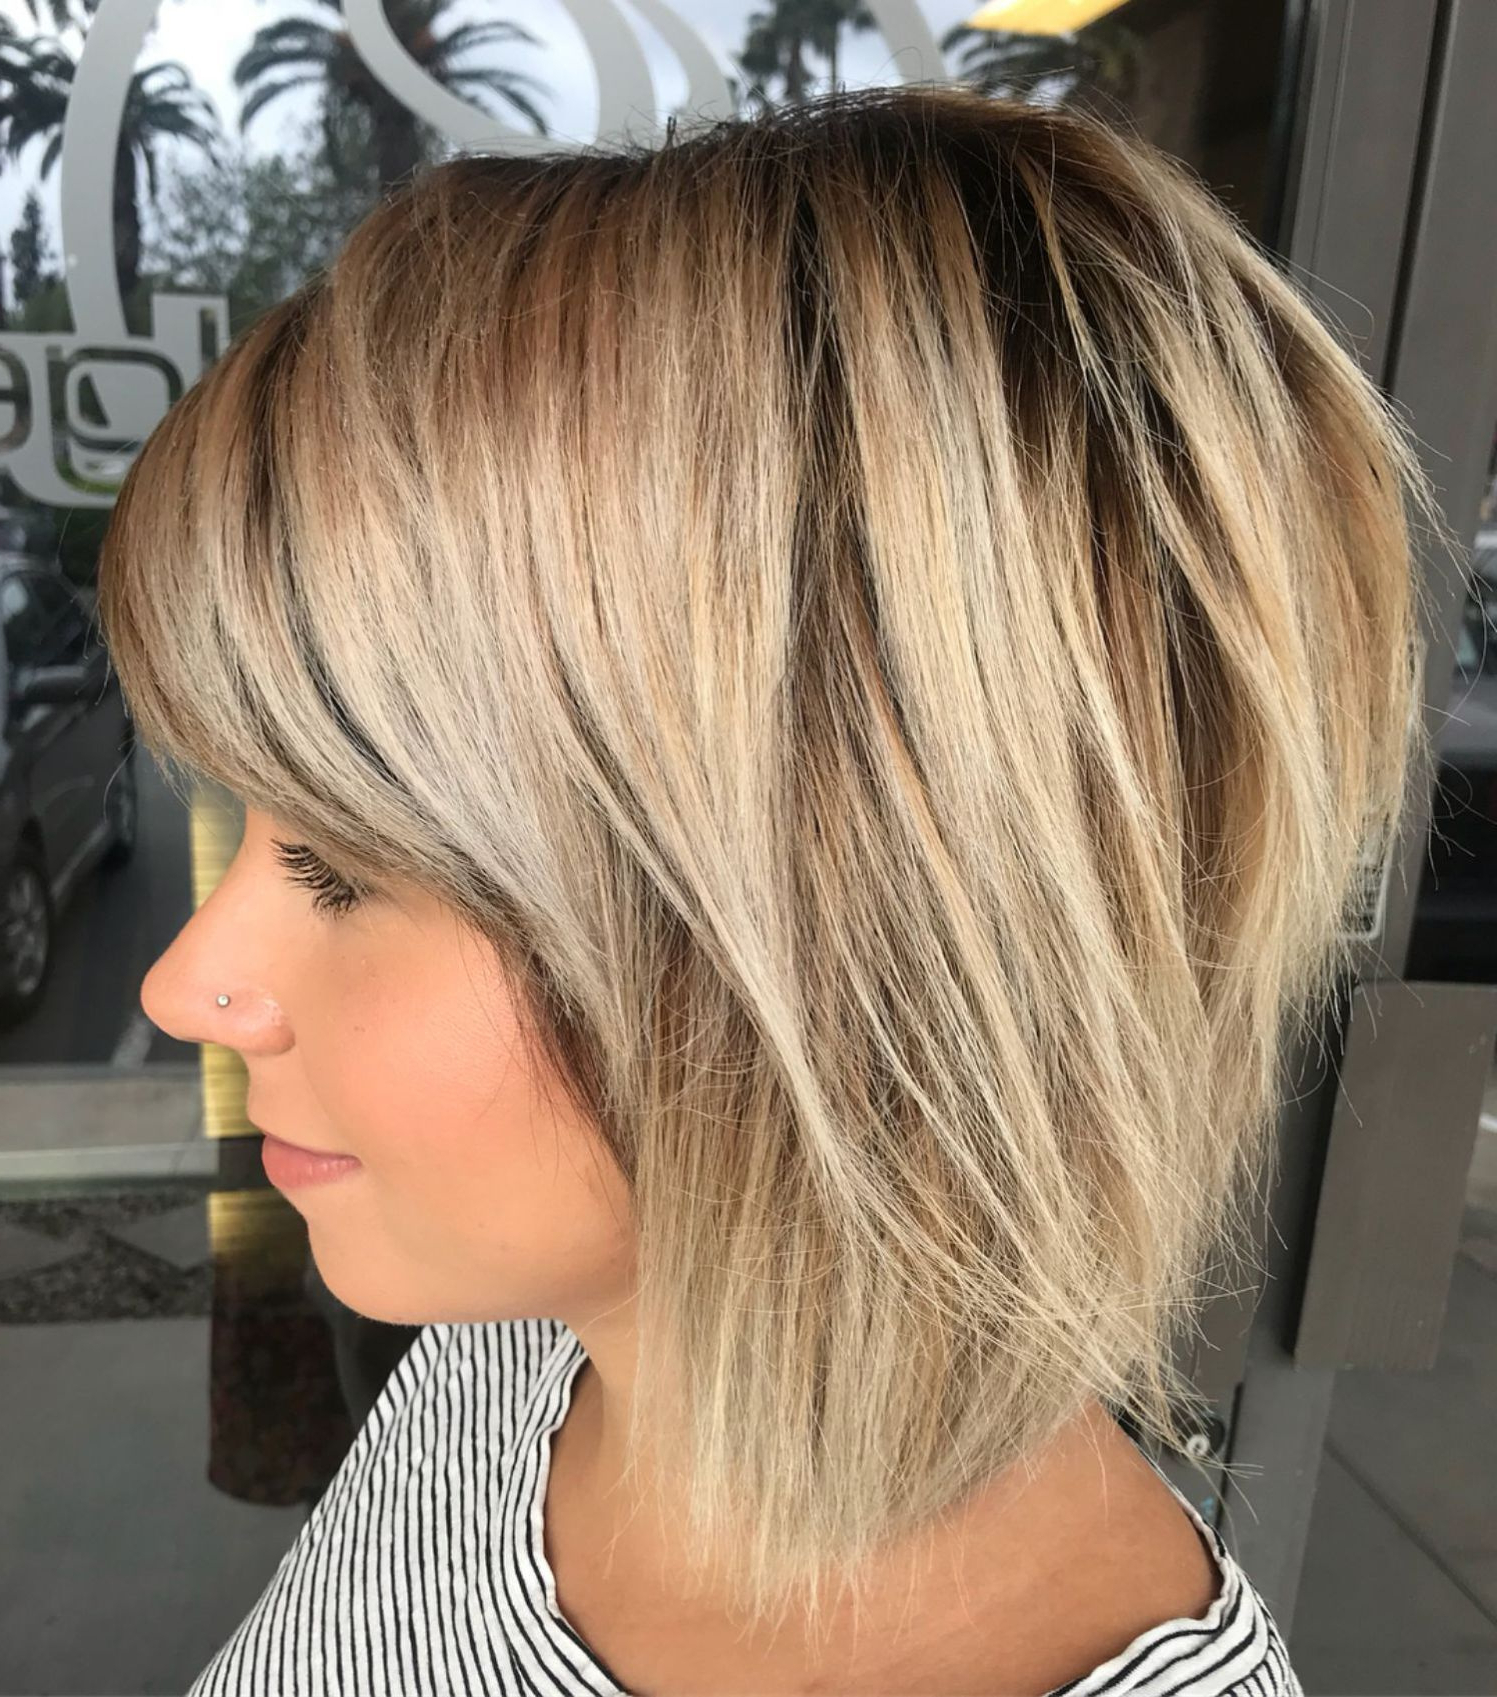 Hairstyles : Razored Blonde Bob Delightful 60 Beautiful And Regarding Widely Used Razored Blonde Bob Haircuts With Bangs (View 11 of 20)